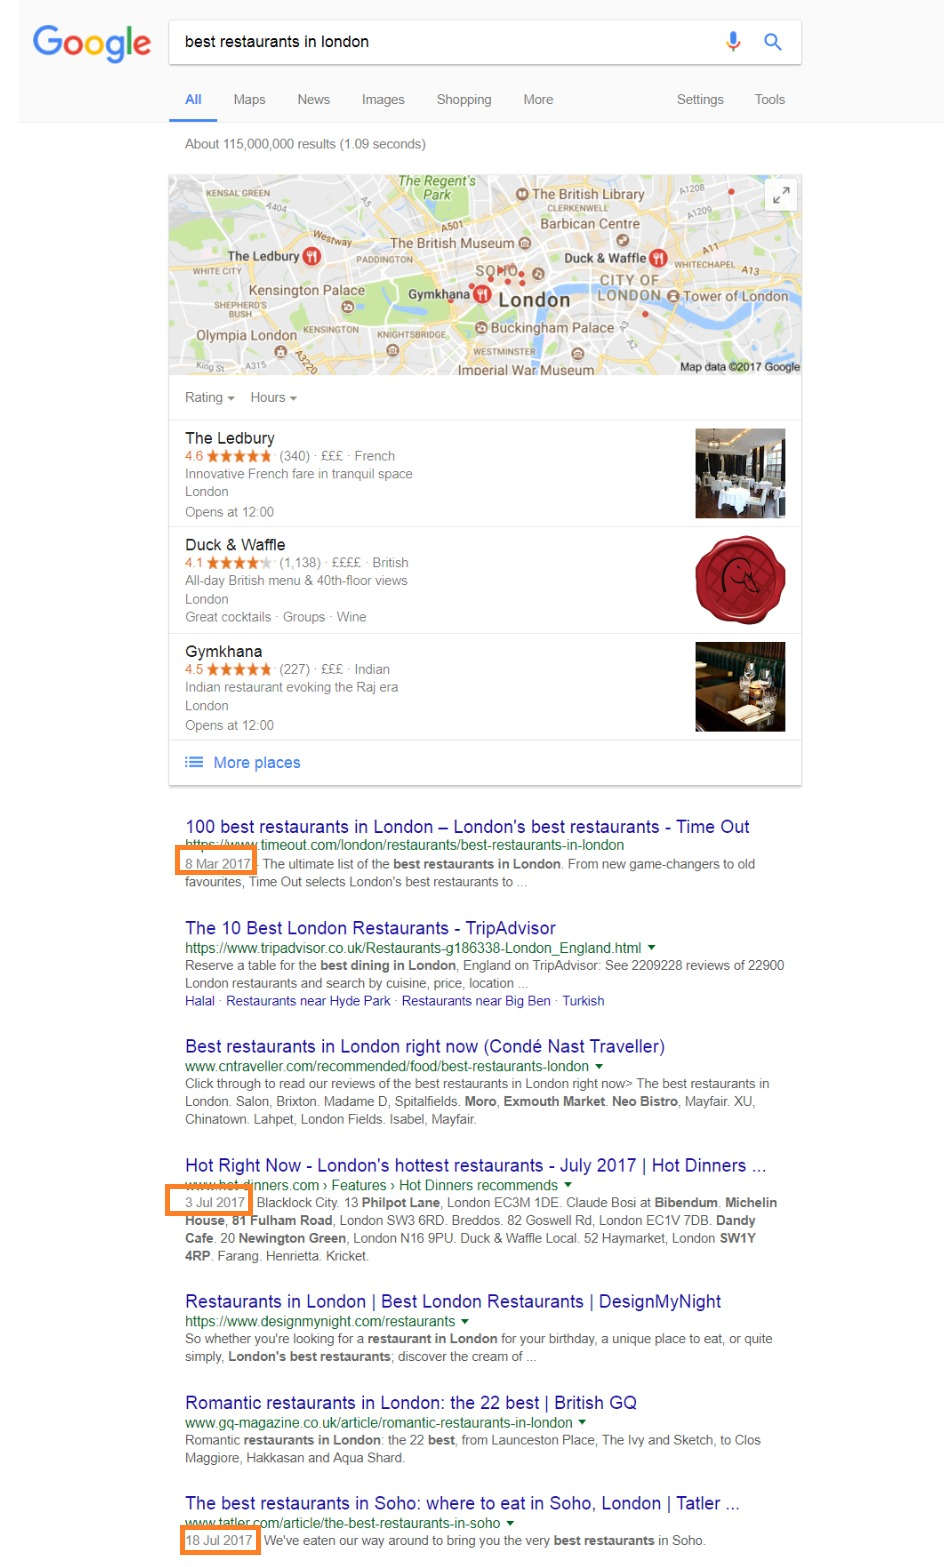 Refreshing Old Content - Google SERPS Publish Date